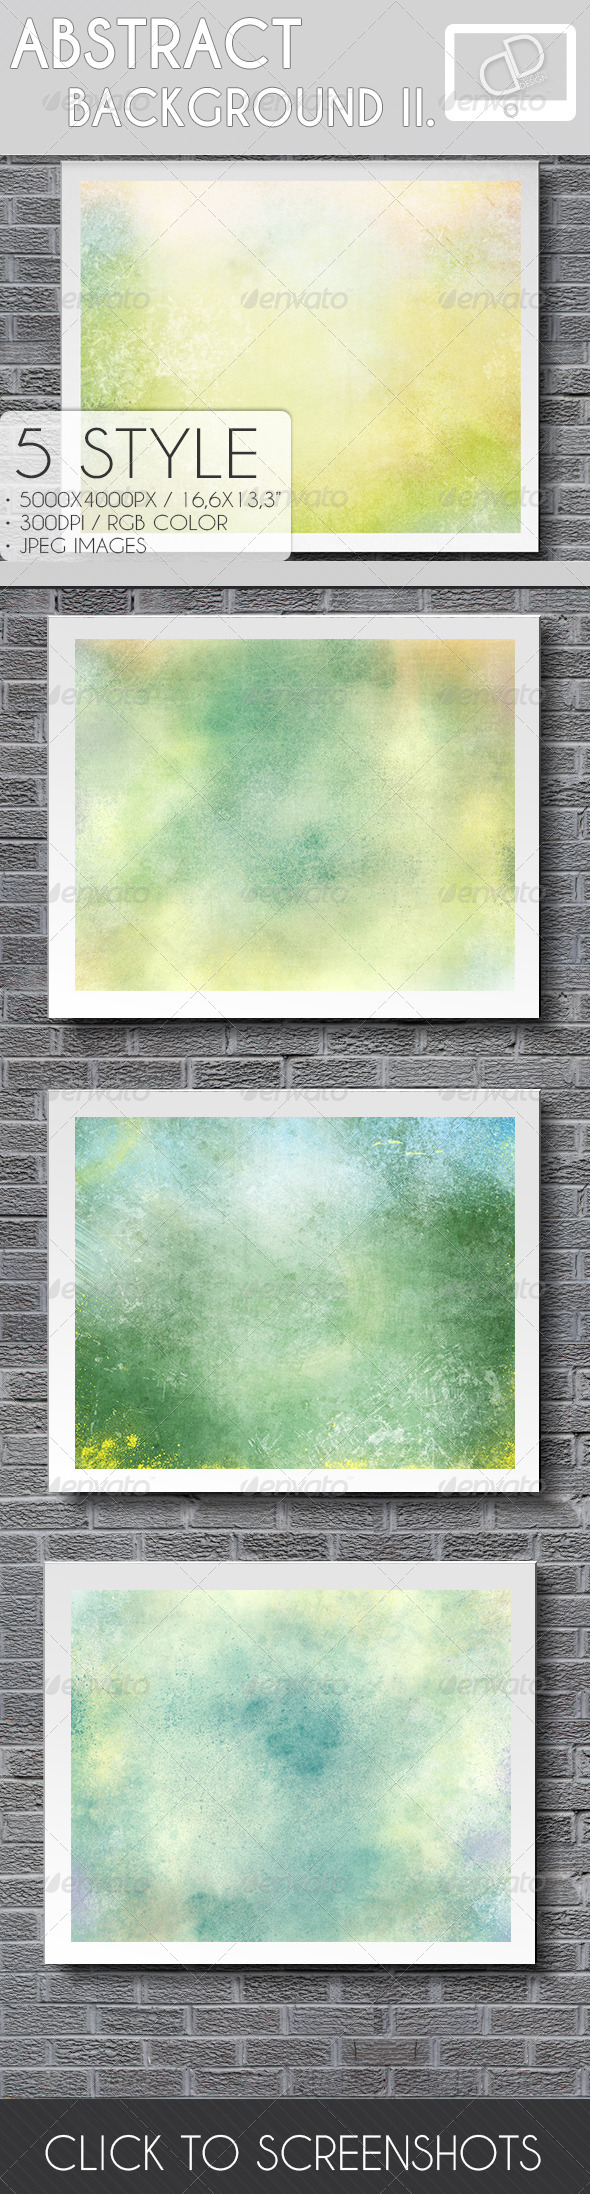 GraphicRiver Abstract Background II 6895691